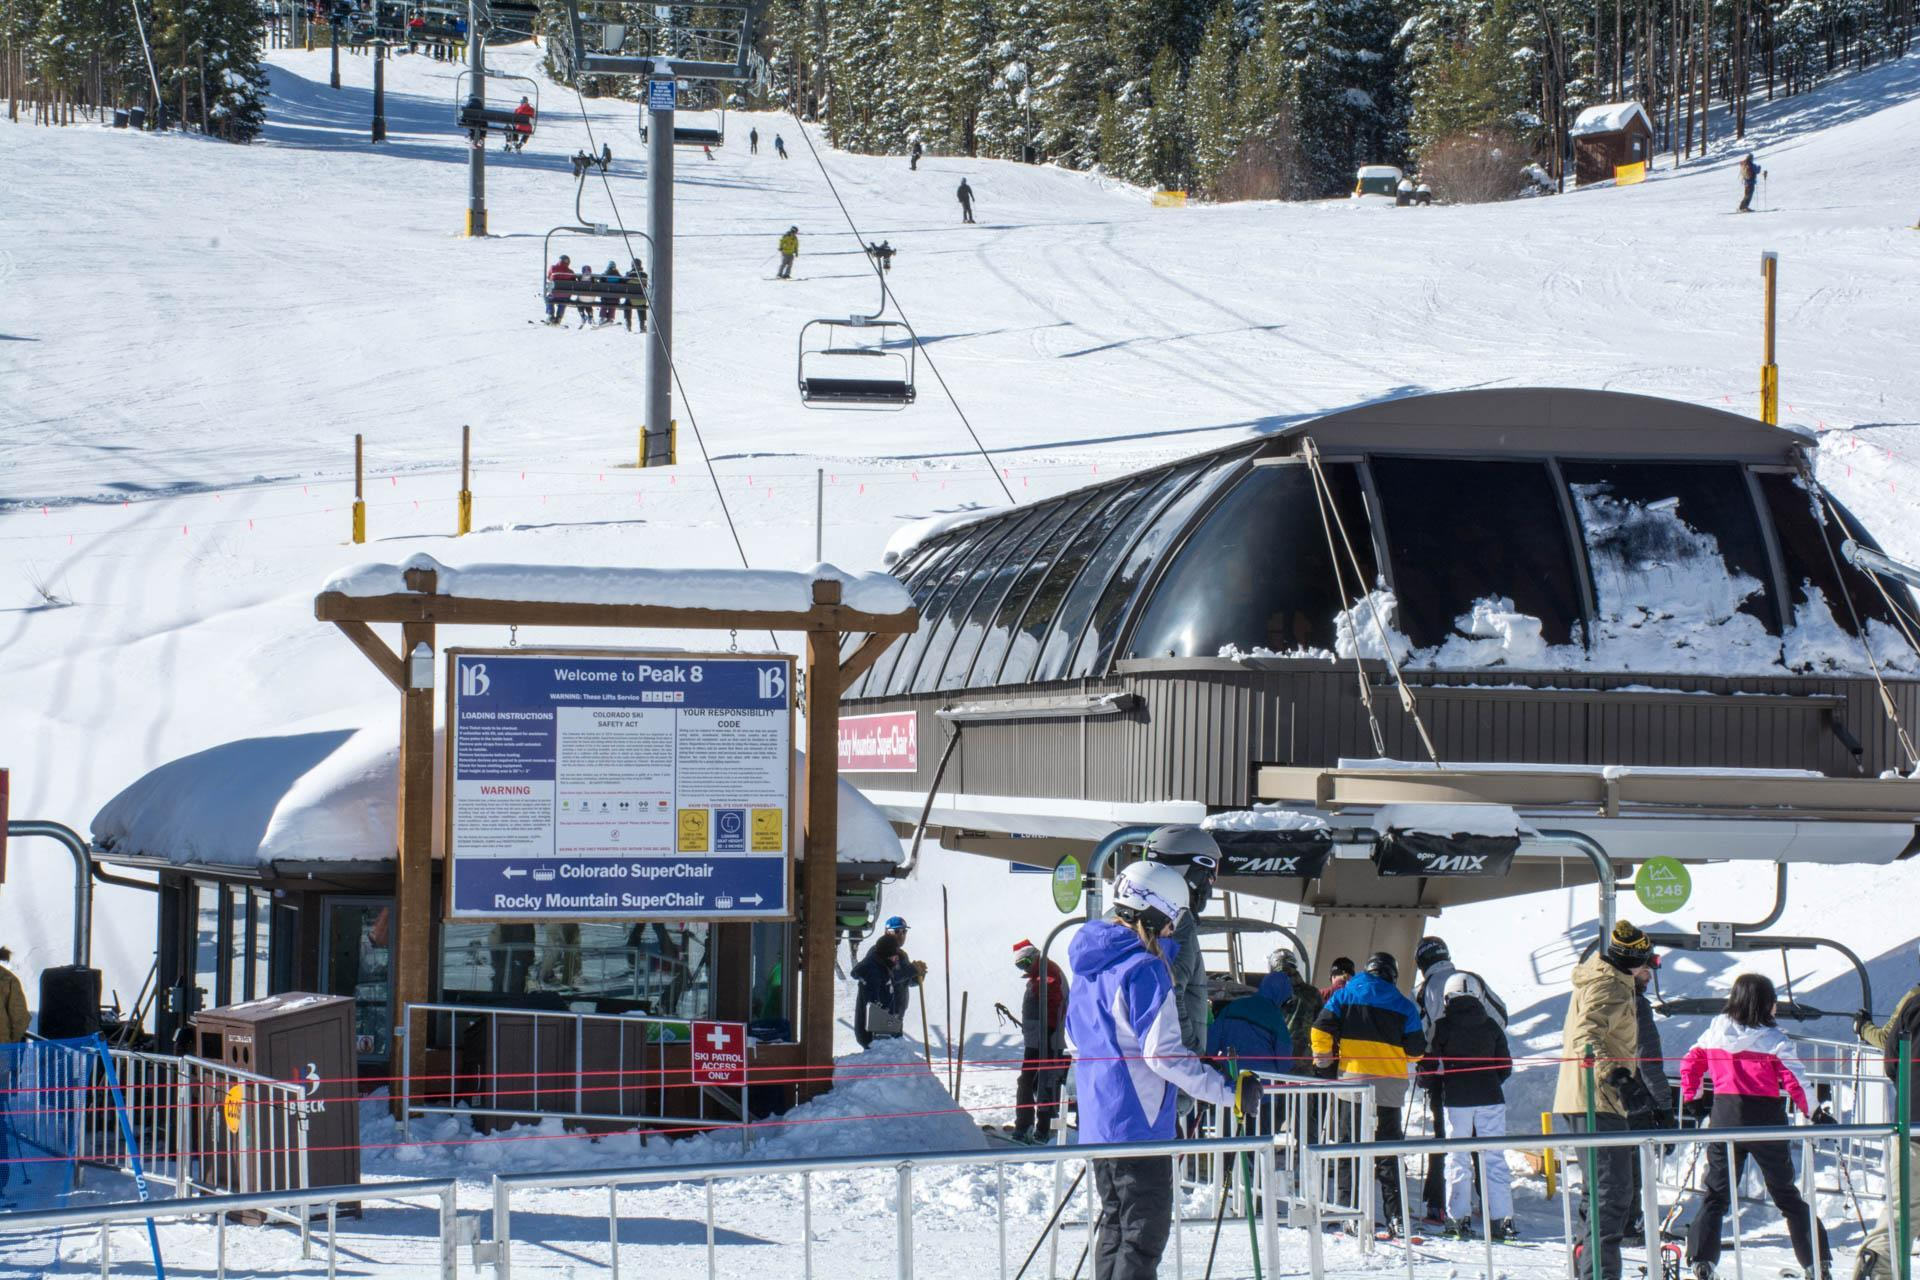 Peak 8 Breckenridge Ski Area